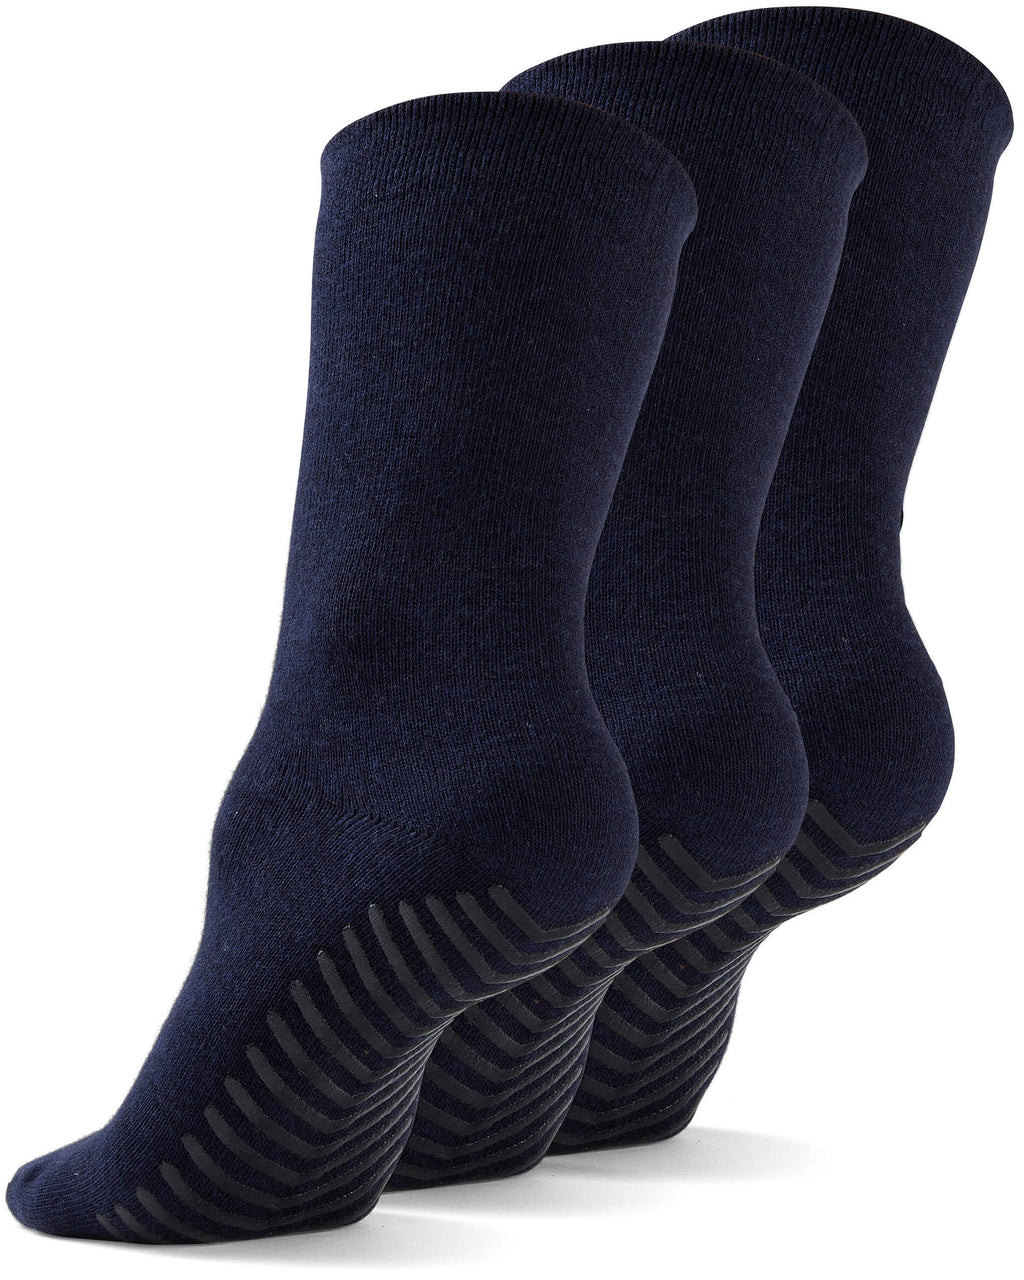 Gripjoy Men's Crew Grip Socks Navy 3-Pack - Gripjoy Socks